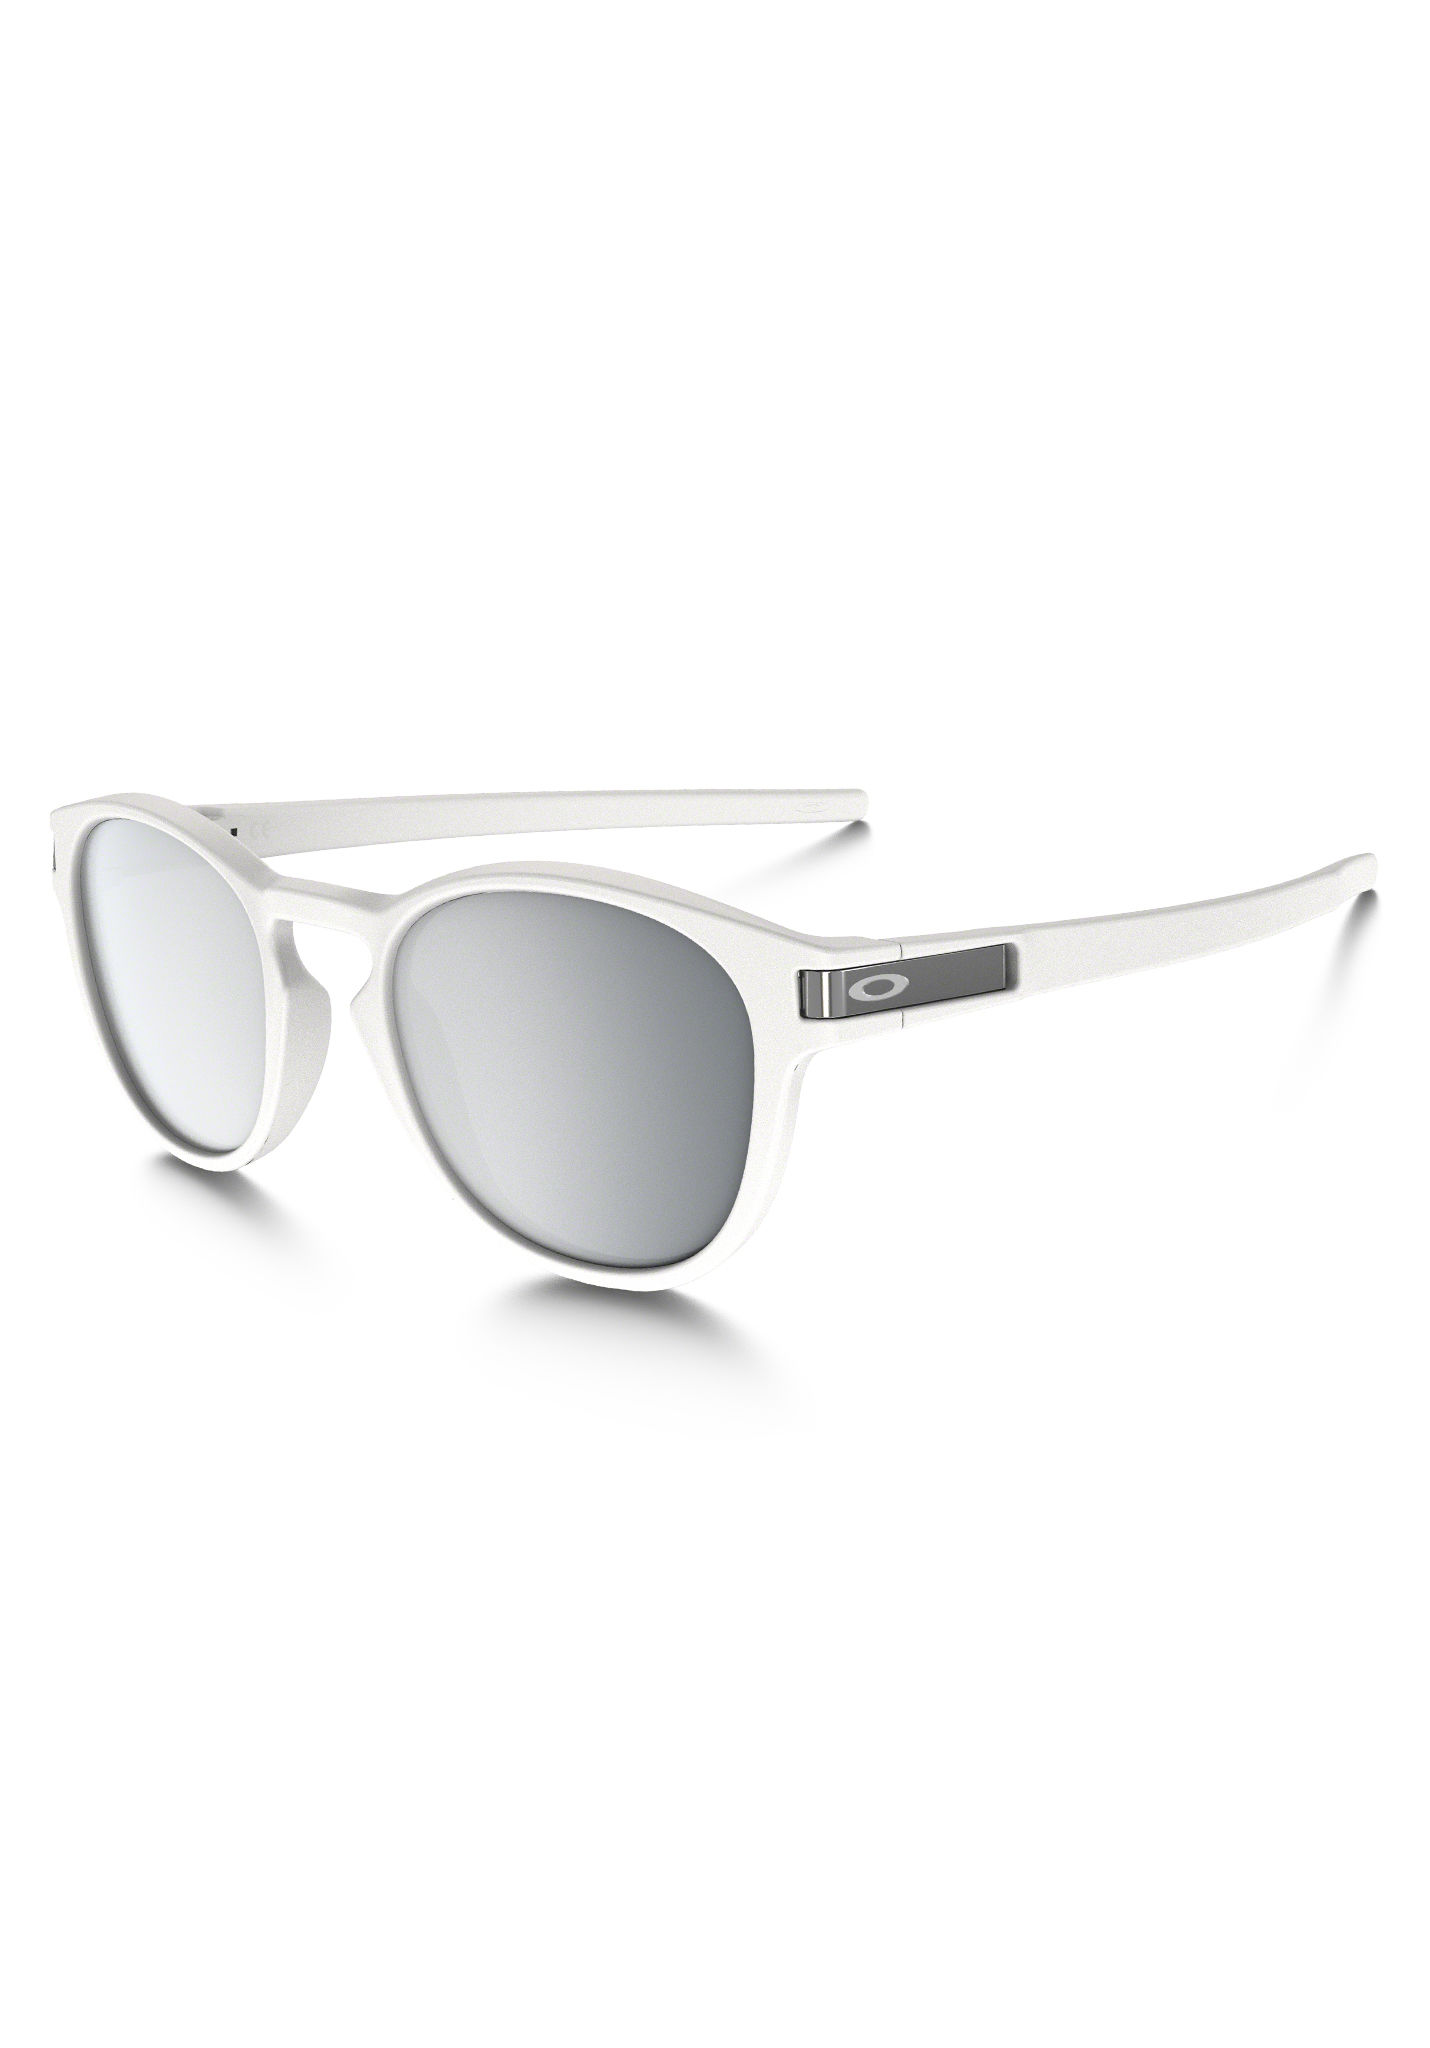 mens oakleys jtld  Mens White Oakley Sunglasses